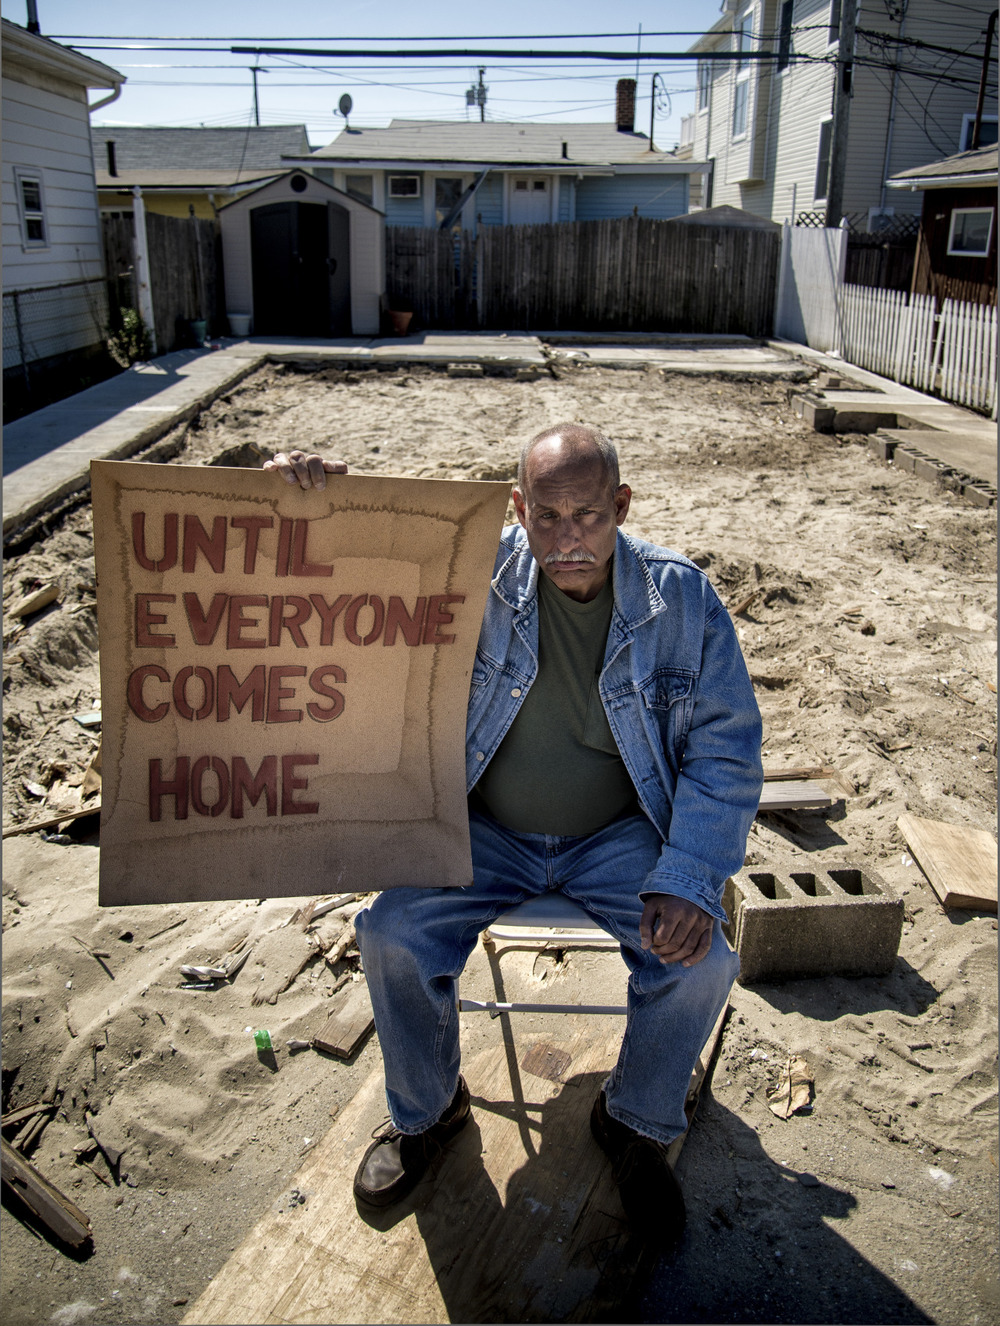 Rich Bartholomew sits on the plot of land where his West End, Long Beach home once stood, holding a sign drawn up by a neighbor for the community members.  Many of the Long Beach residents have felt exasperated at what they feel is the neglect and sheer lack of consideration shown by the town.   May 2 2013